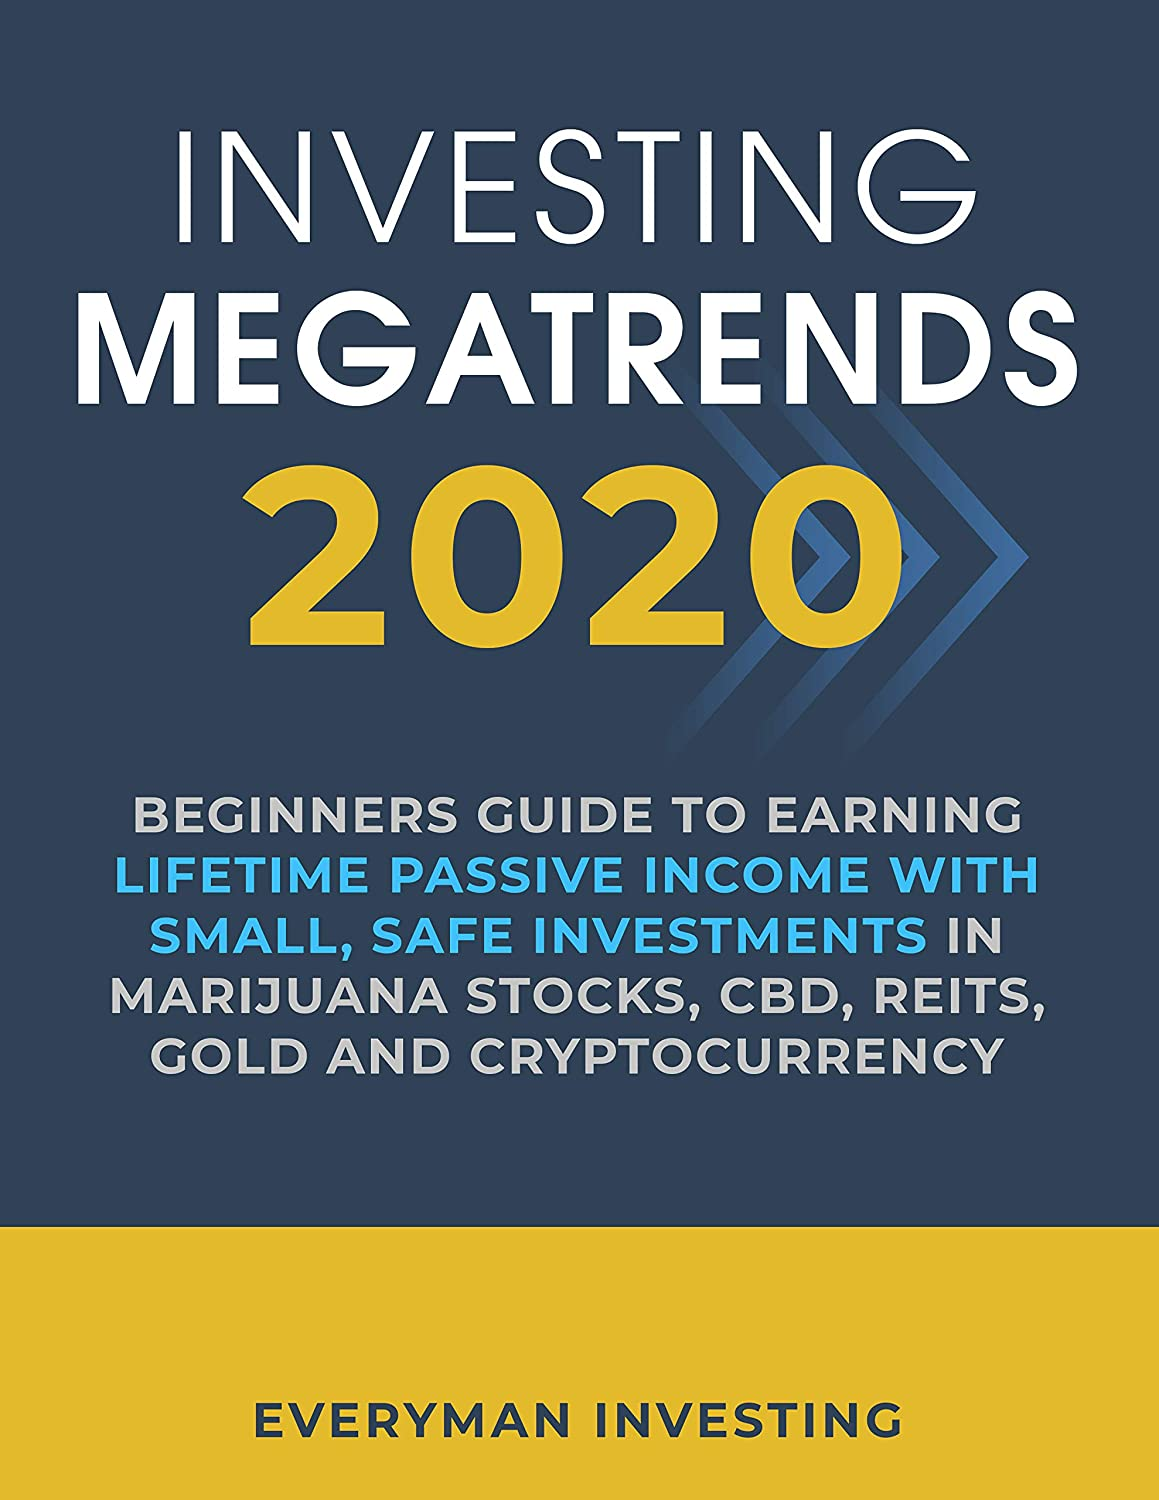 Investing Megatrends 2020: Beginners Guide to Earning